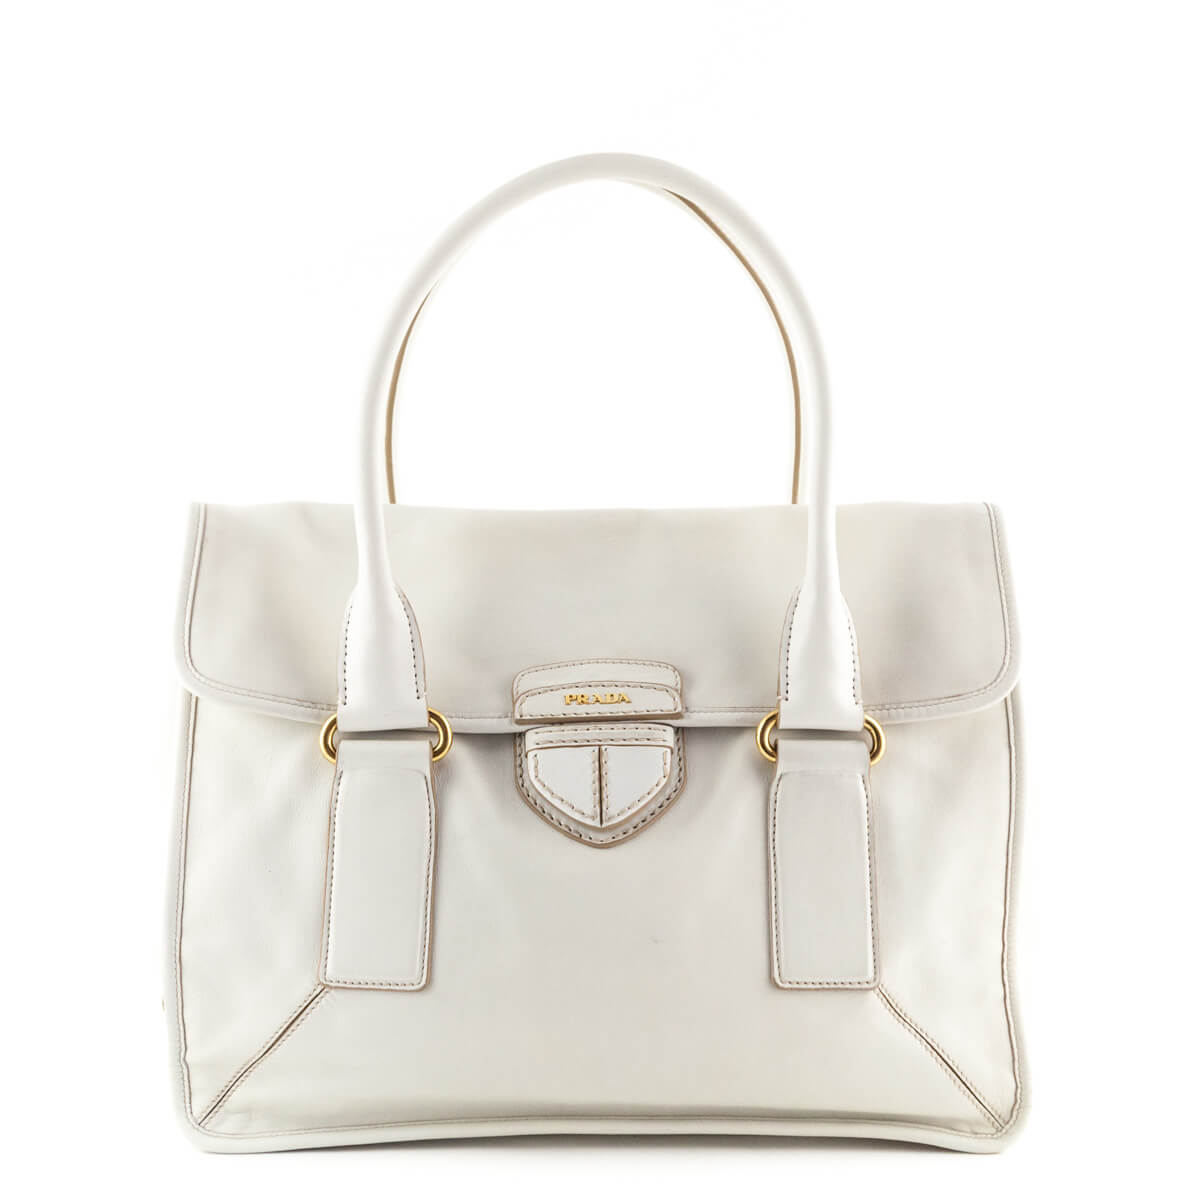 bf9367cbb2 Prada White Calfskin Shoulder Bag - LOVE that BAG - Preowned Authentic  Designer Handbags ...